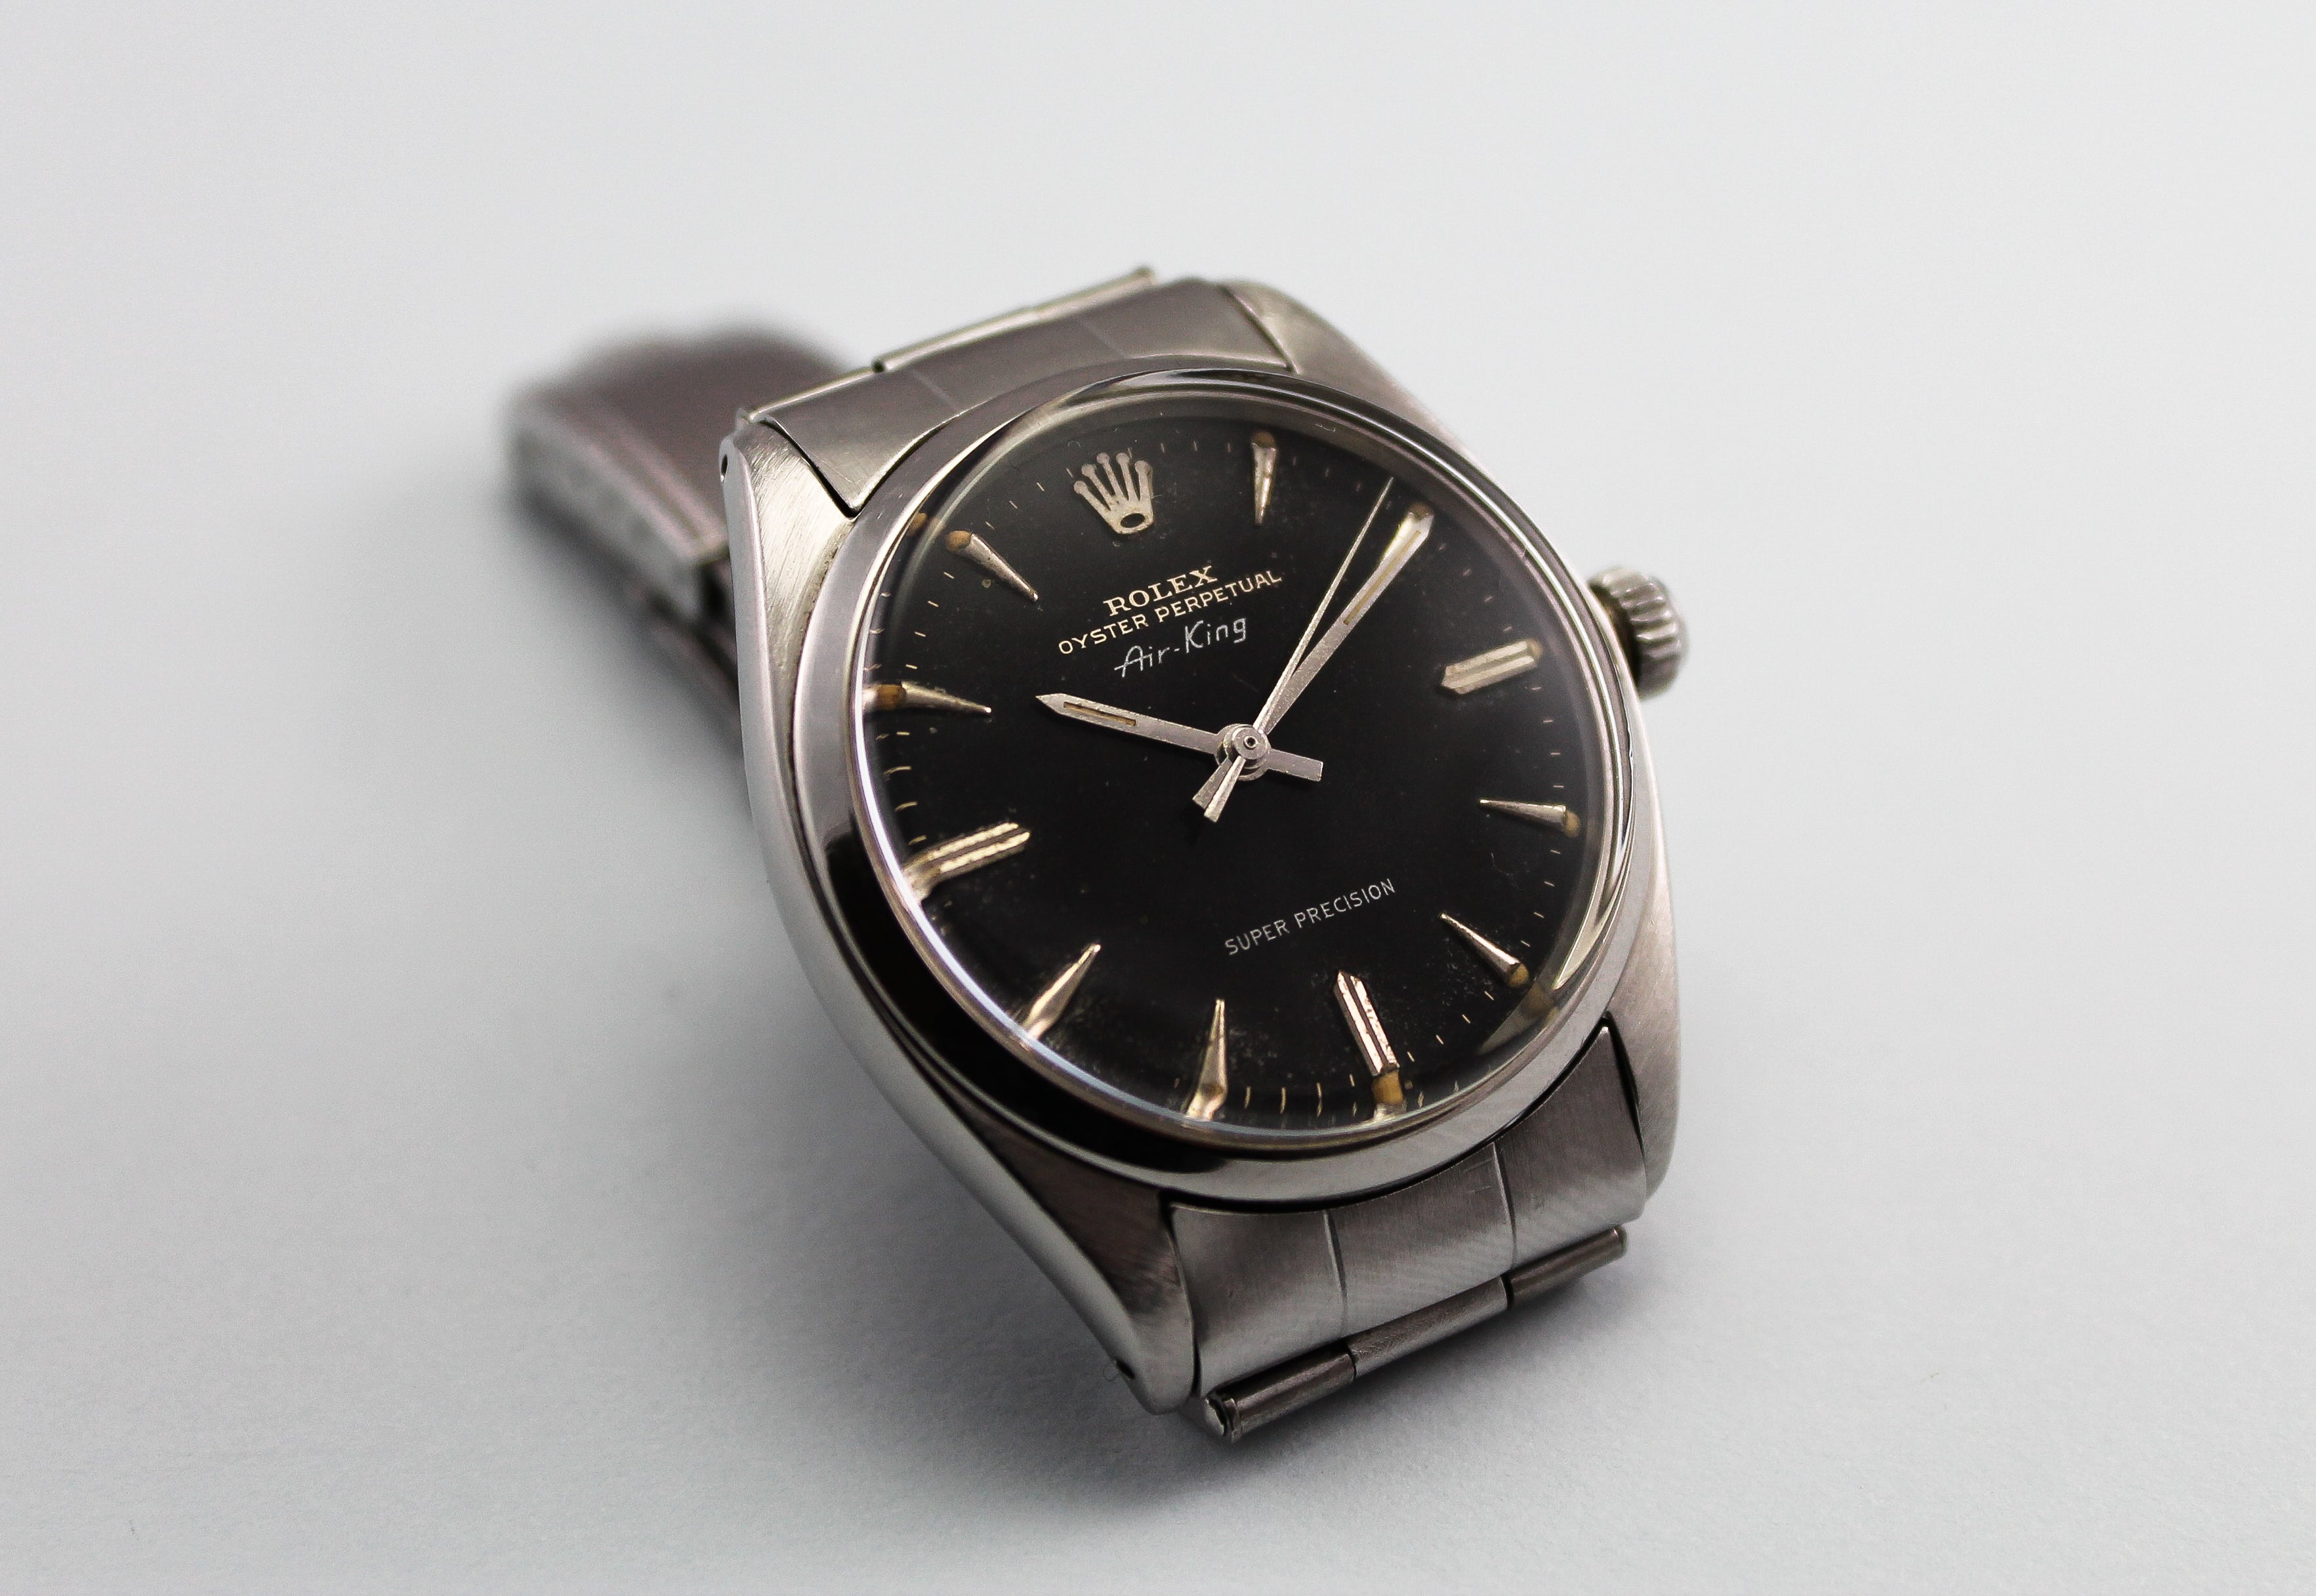 ROLEX Air King Super Precision Swiss only Gilt dial ref 5500 (1961)